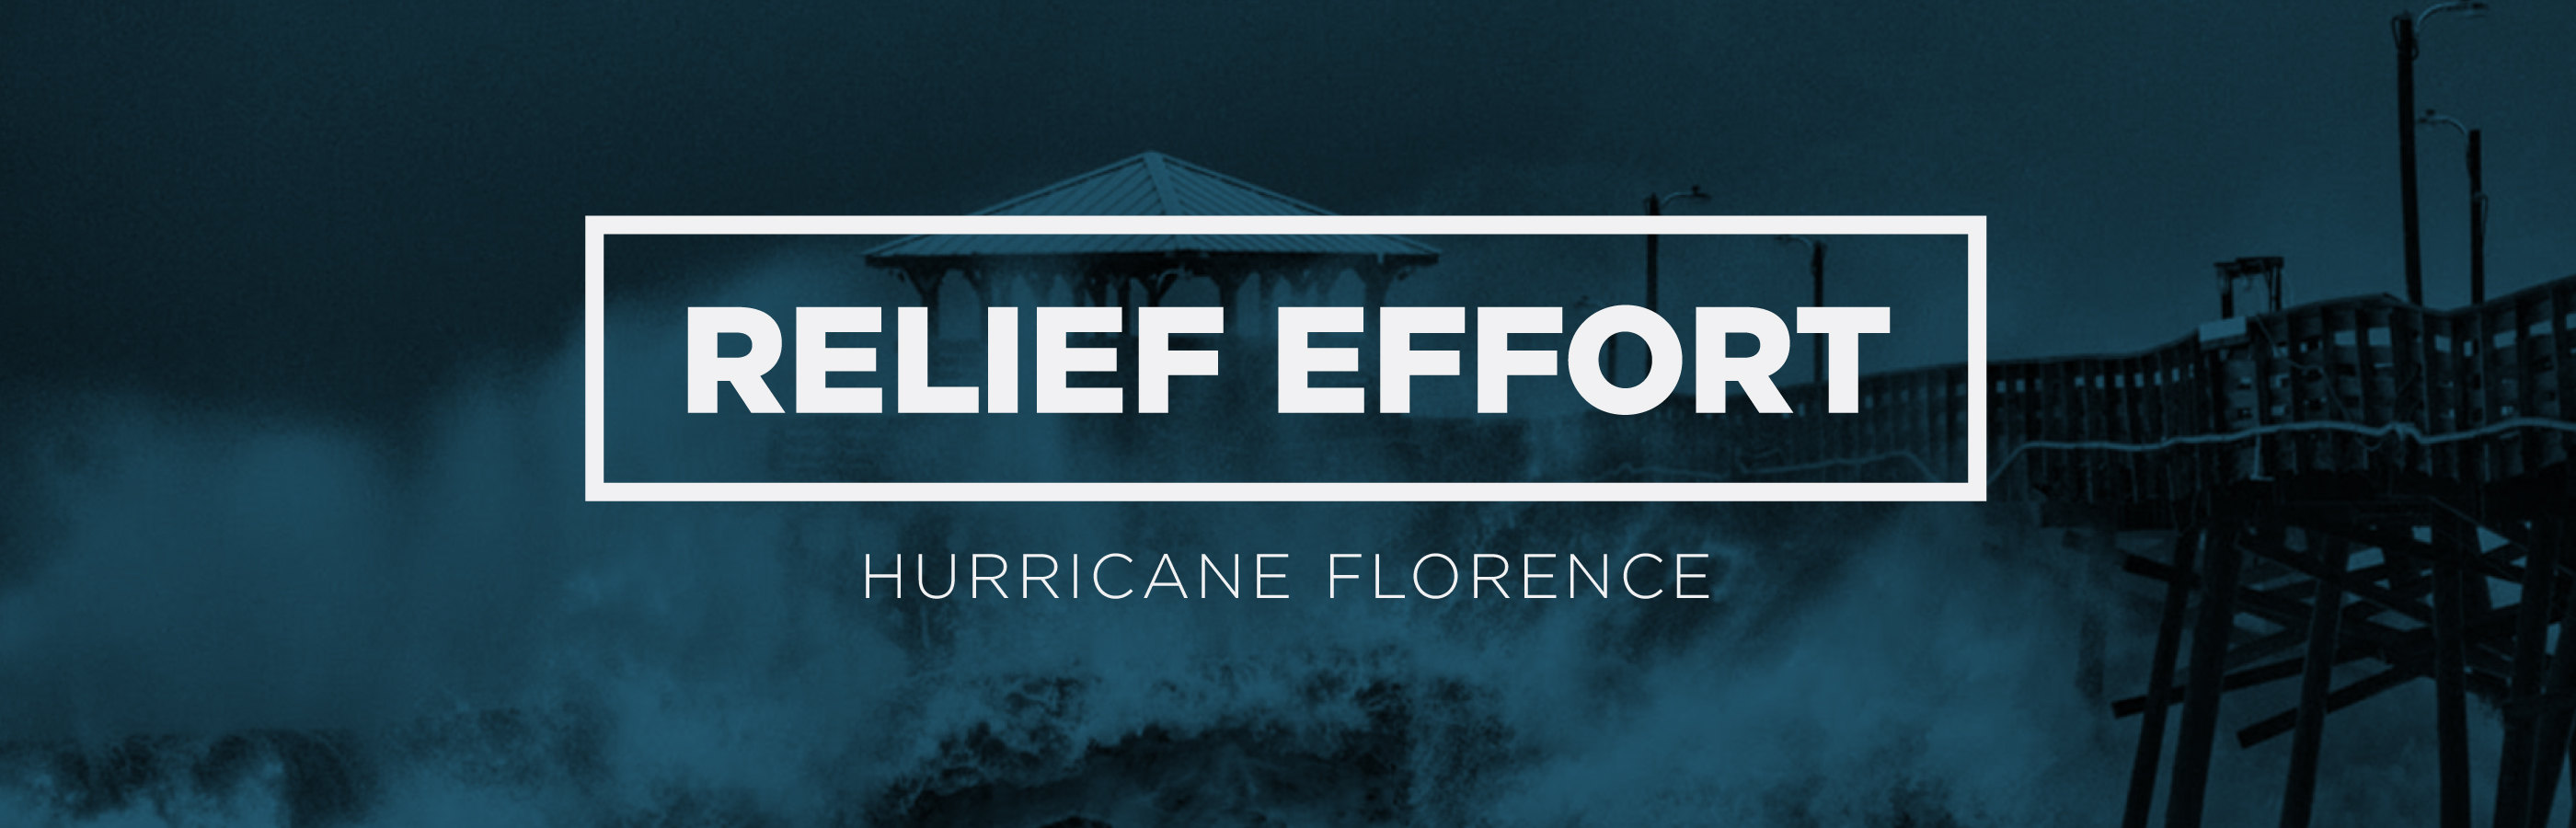 Hurricane-Florence-Relief-One-Harbor-Church